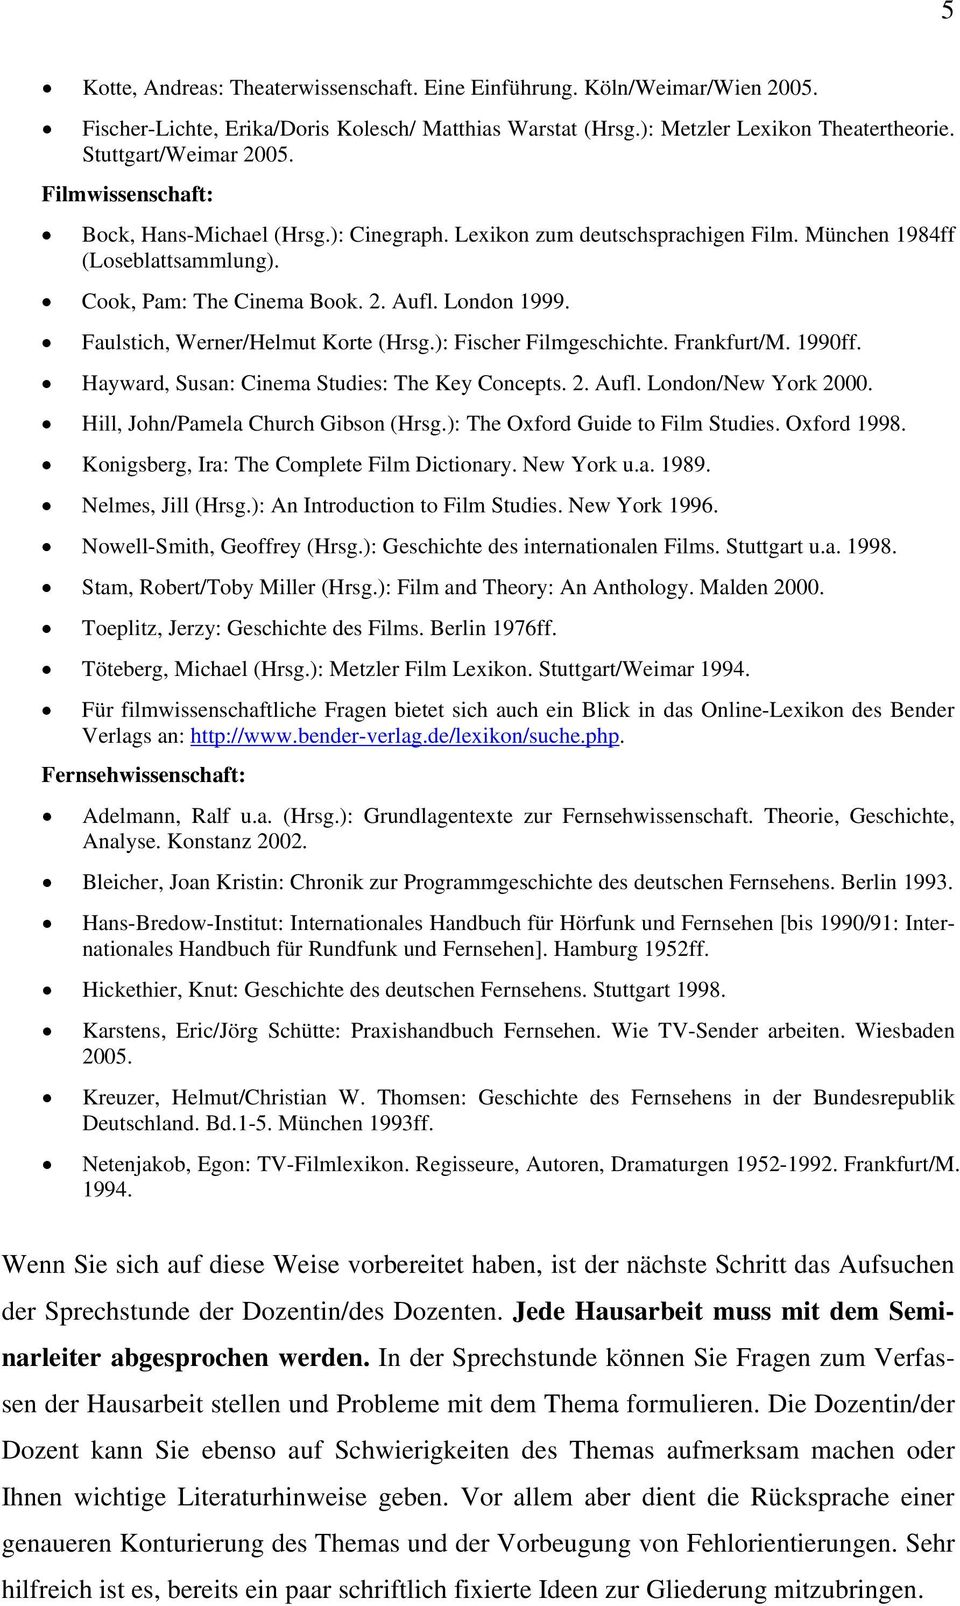 Faulstich, Werner/Helmut Korte (Hrsg.): Fischer Filmgeschichte. Frankfurt/M. 1990ff. Hayward, Susan: Cinema Studies: The Key Concepts. 2. Aufl. London/New York 2000.